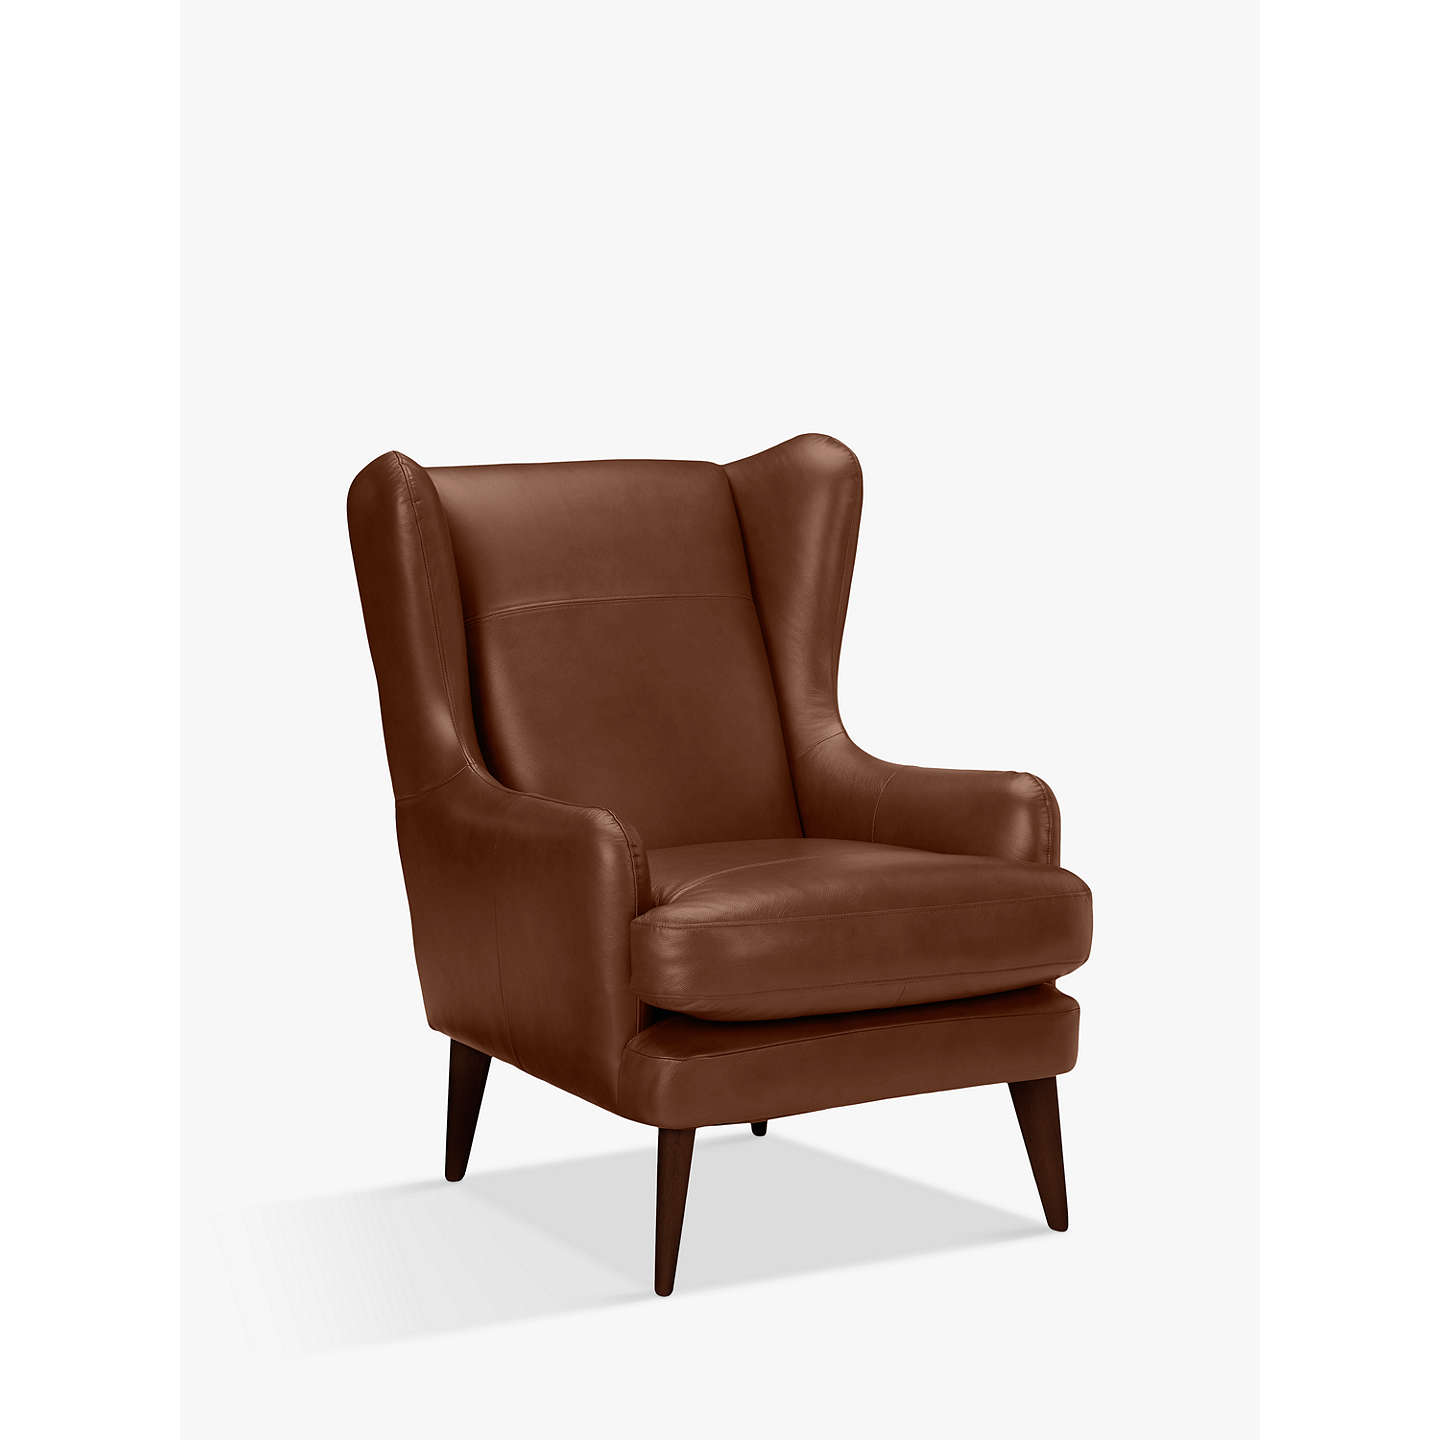 leather buy chair cropwell armchair vintage brown arm kontenta